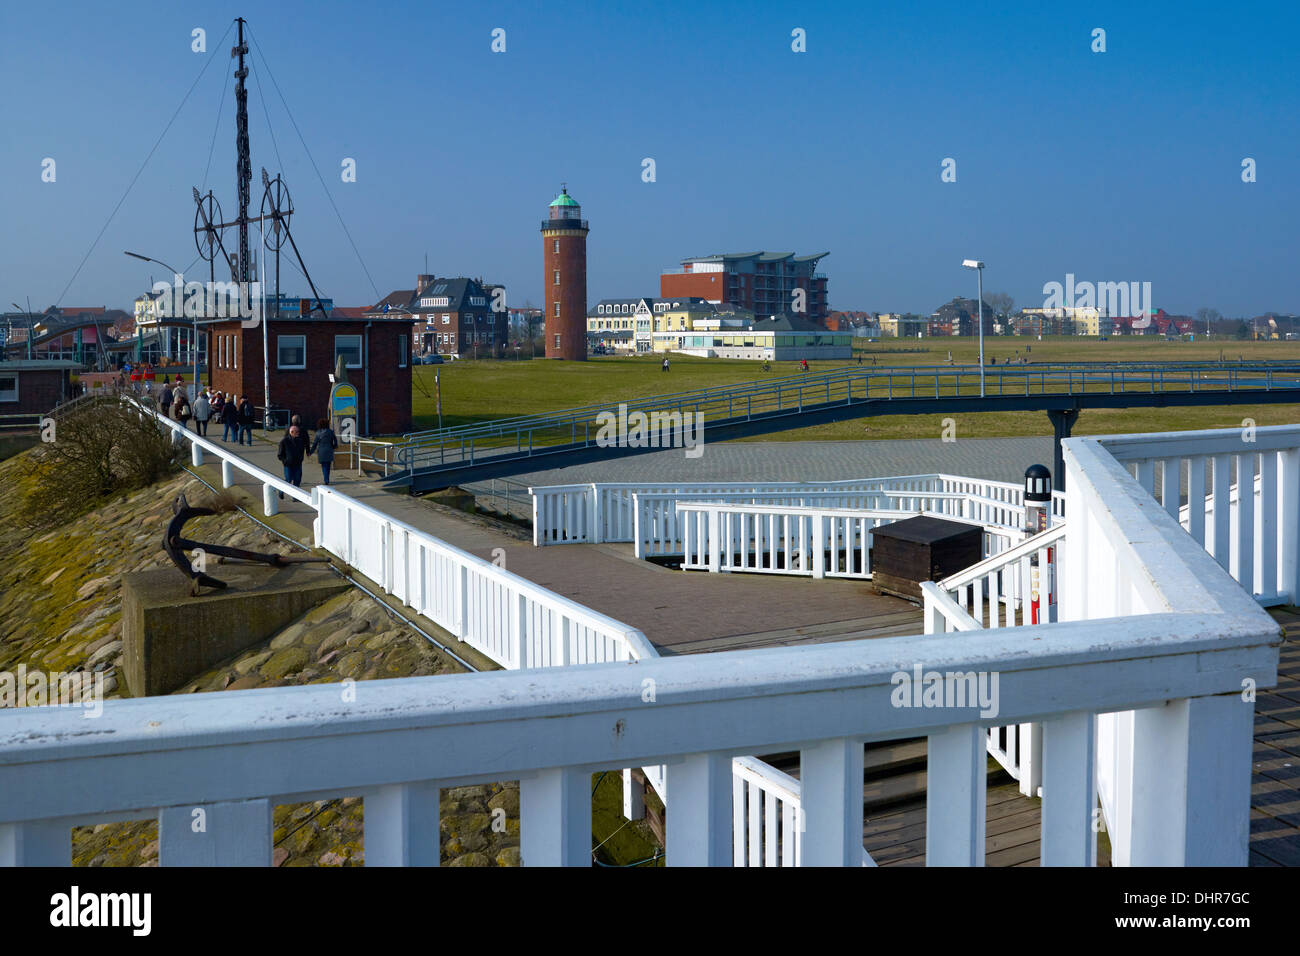 Pier at Alte Liebe, Cuxhaven, Lower Saxony, Germany - Stock Image